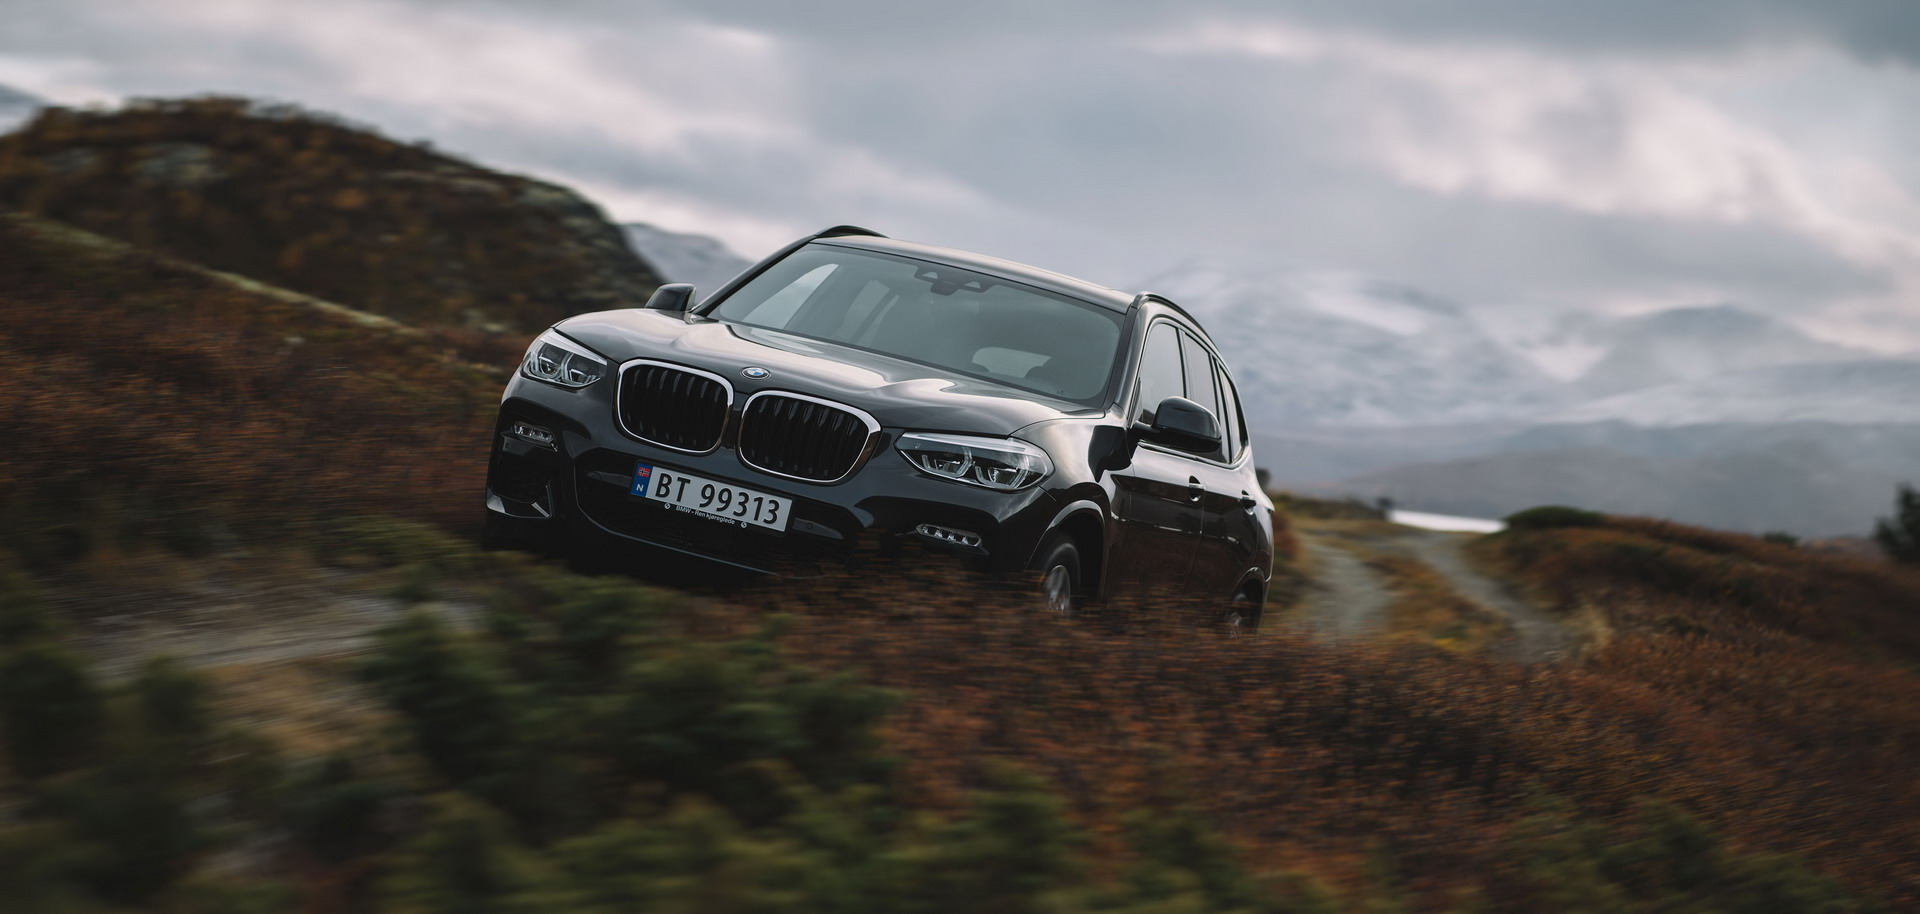 Norway Postcards with BMW X3 1